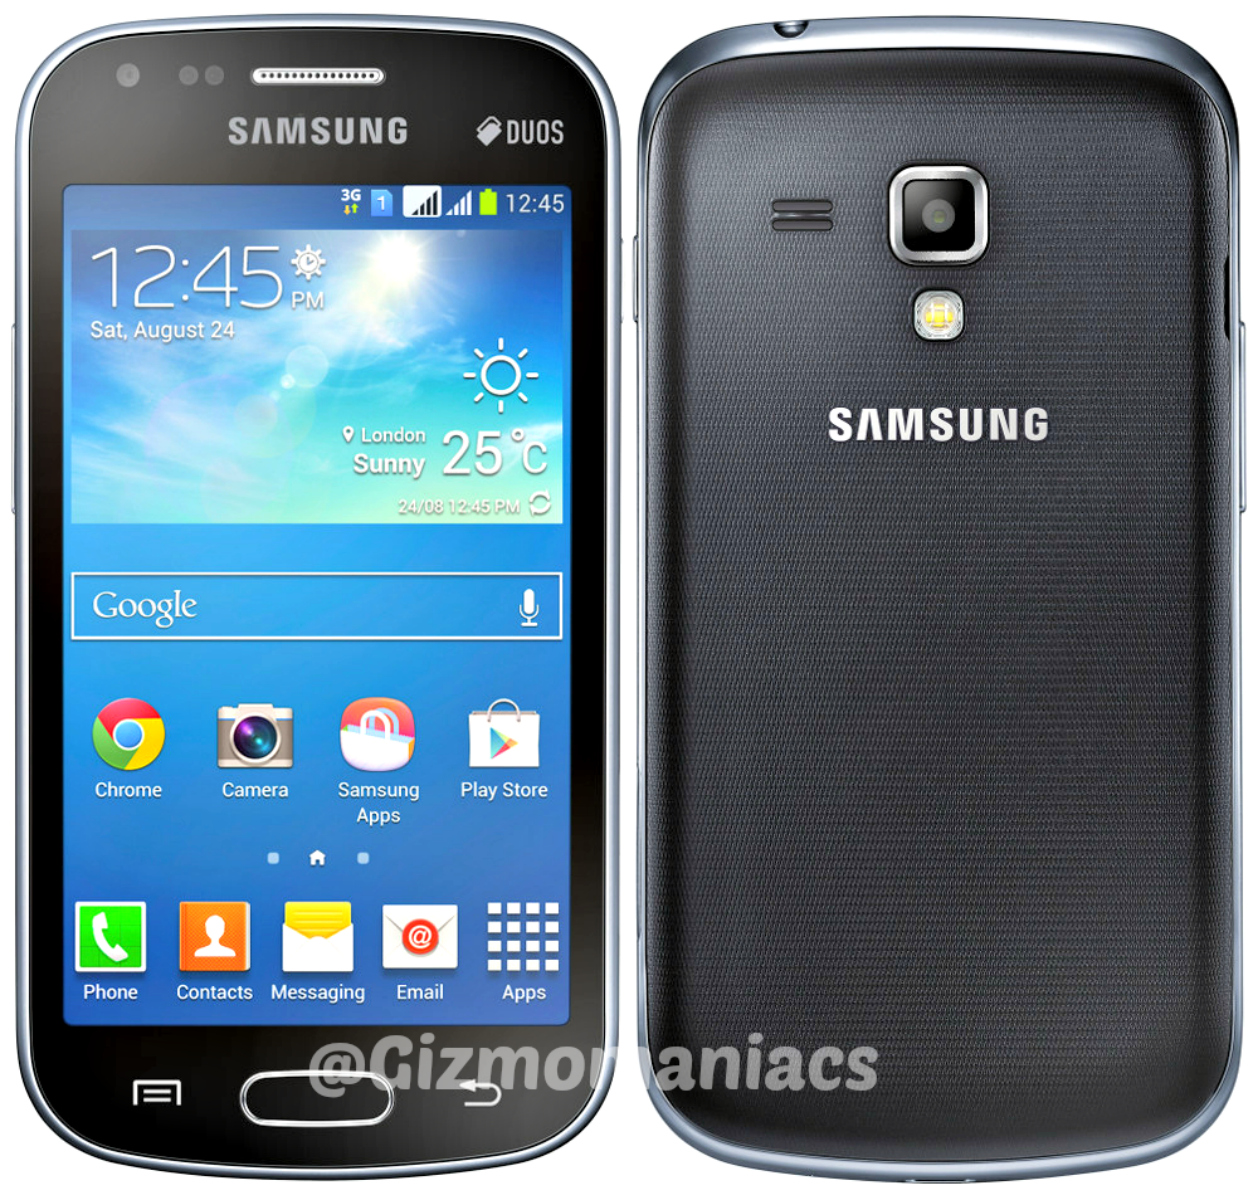 samsung galaxy s duos 2 gt s7582 specs and review gizmomaniacs. Black Bedroom Furniture Sets. Home Design Ideas